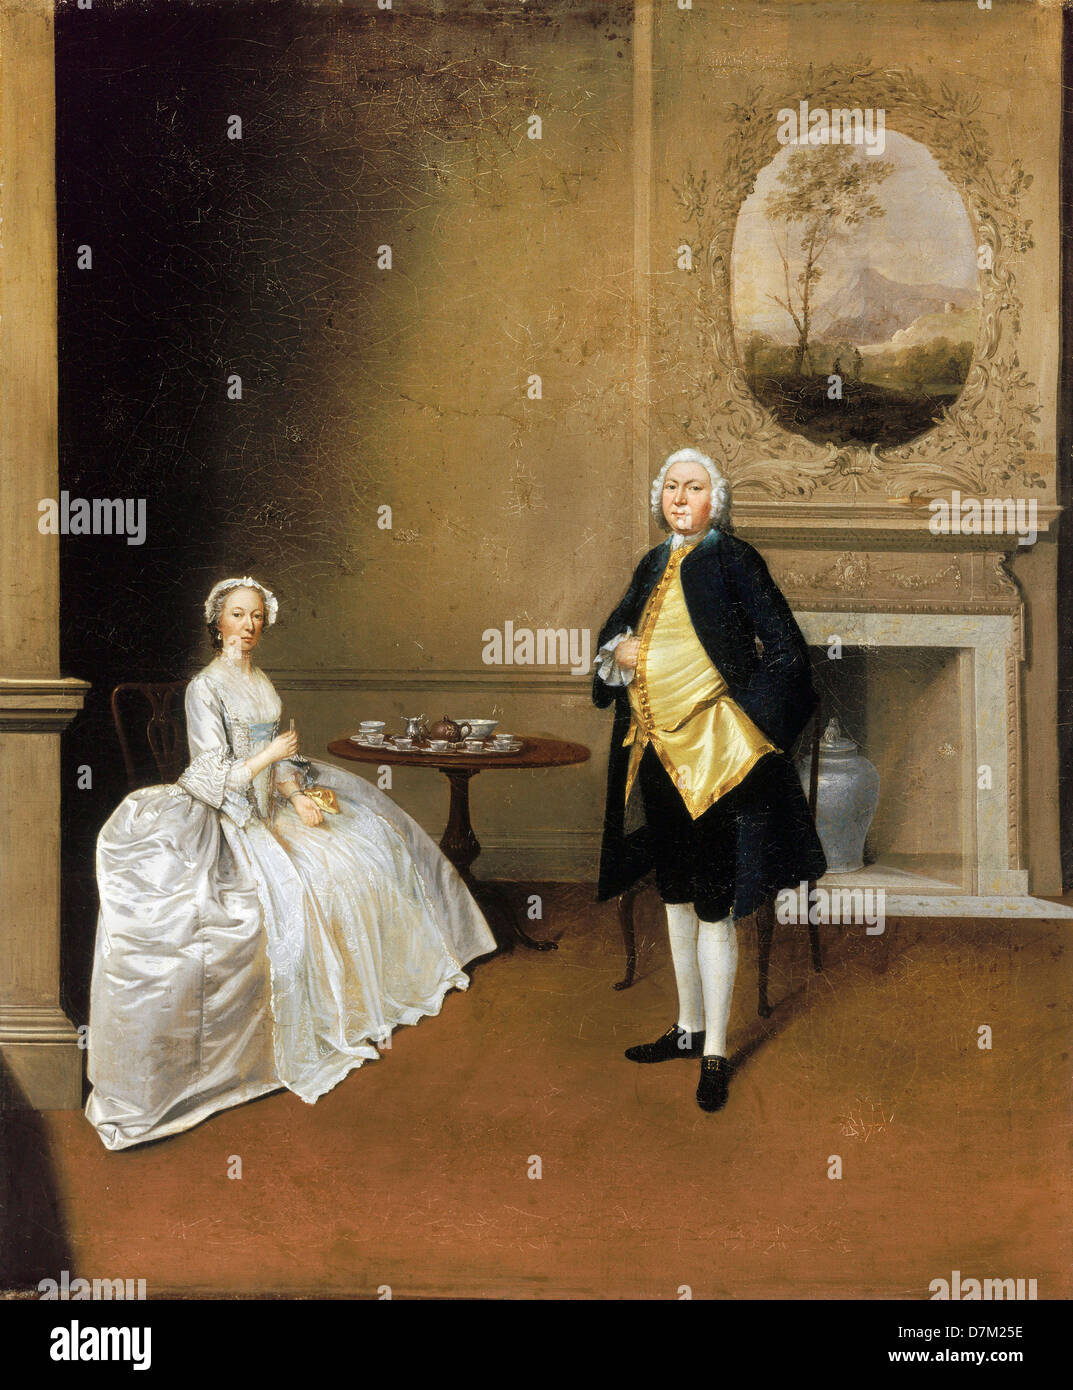 Arthur Devis, Mr. and Mrs. Hill 1750-1751 Oil on canvas. Yale Center for British Art, New Haven, Connecticut, USA. - Stock Image